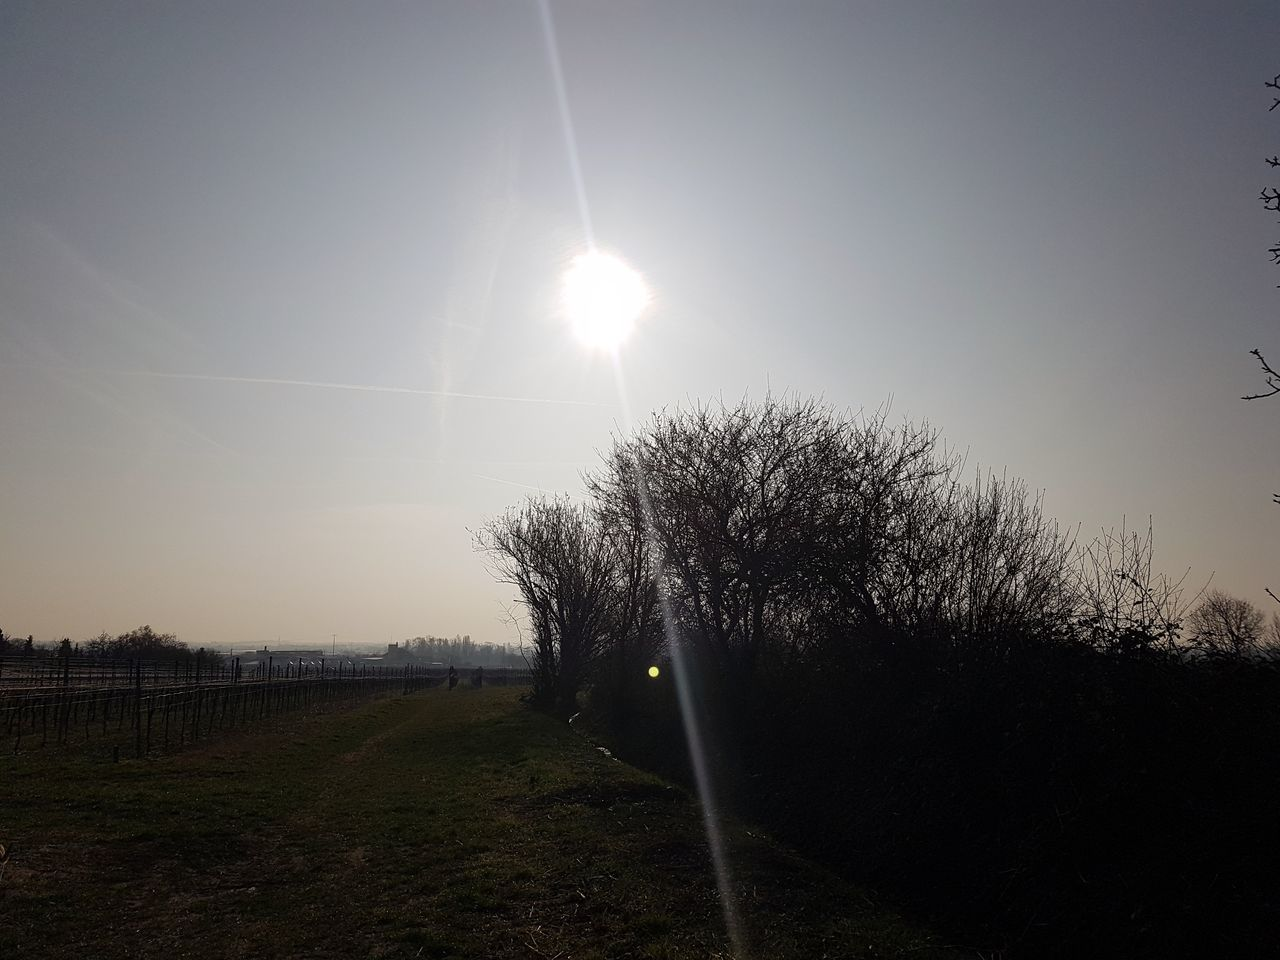 sun, sunlight, sunbeam, lens flare, tranquility, beauty in nature, nature, outdoors, grass, day, no people, tree, sky, clear sky